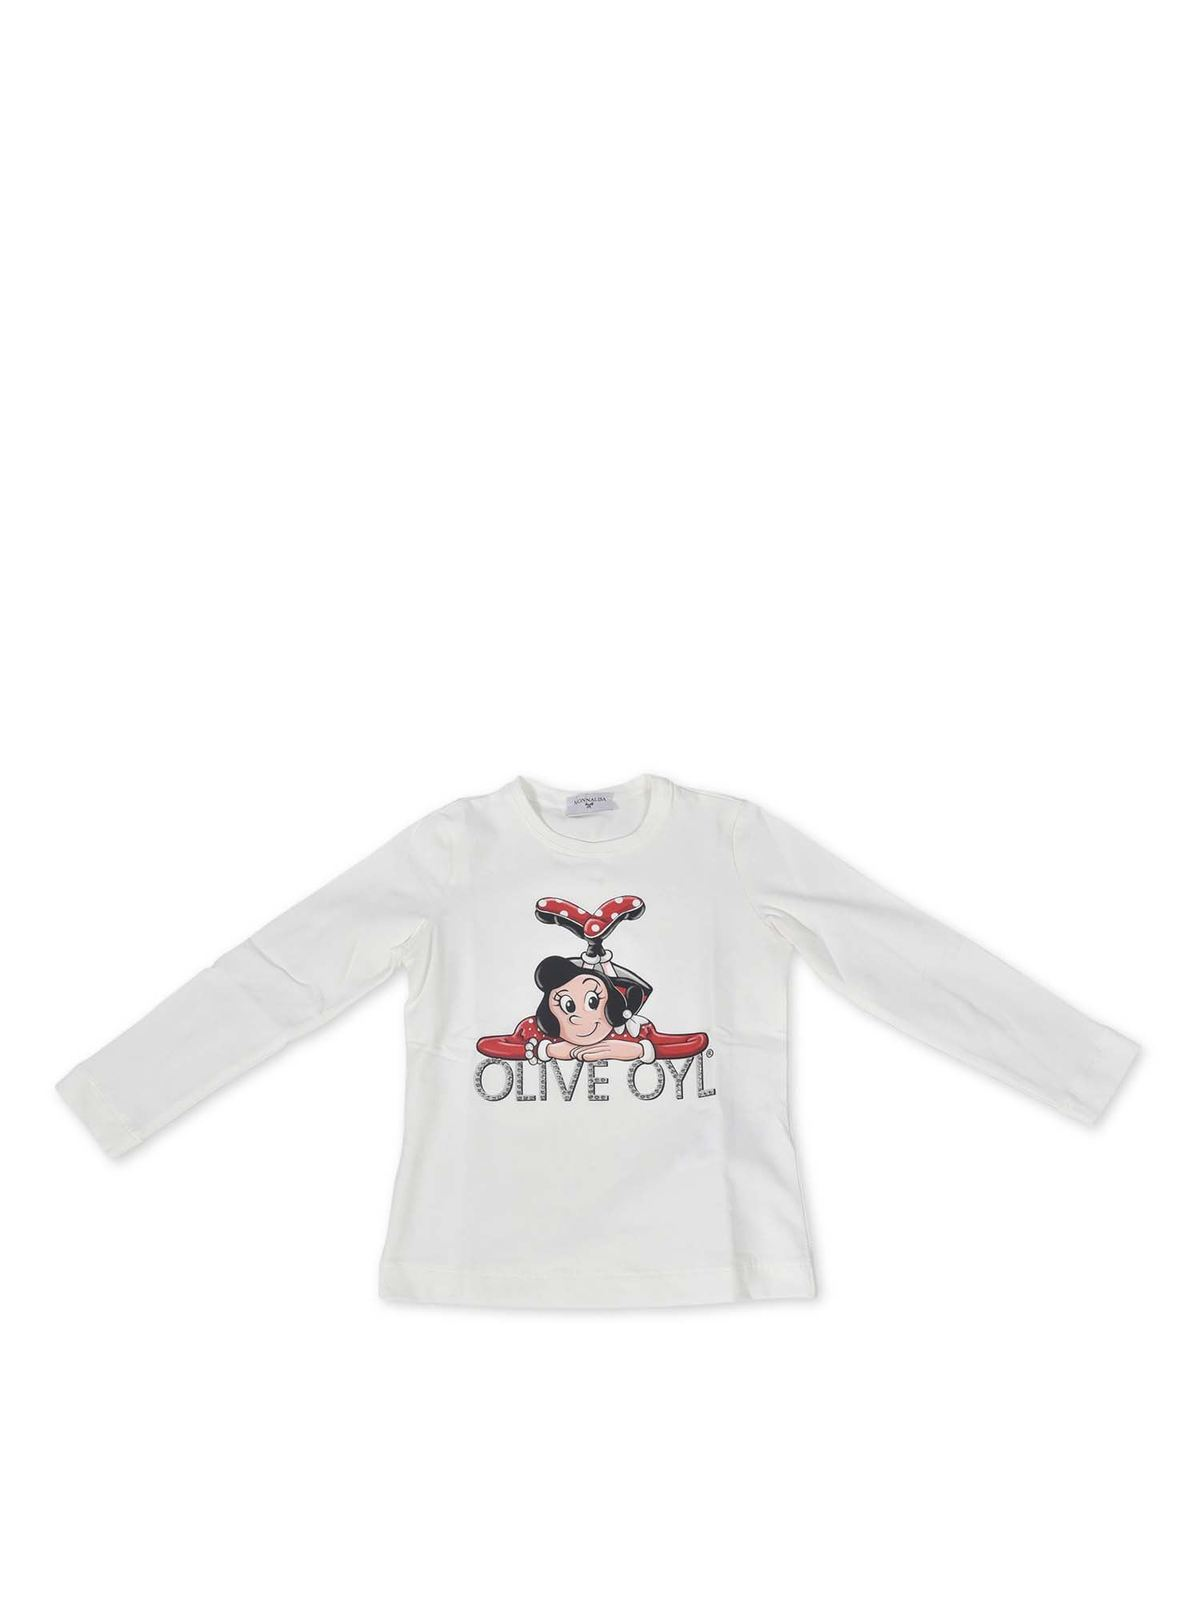 Monnalisa Cottons OLIVE OYL PRINT T-SHIRT IN WHITE